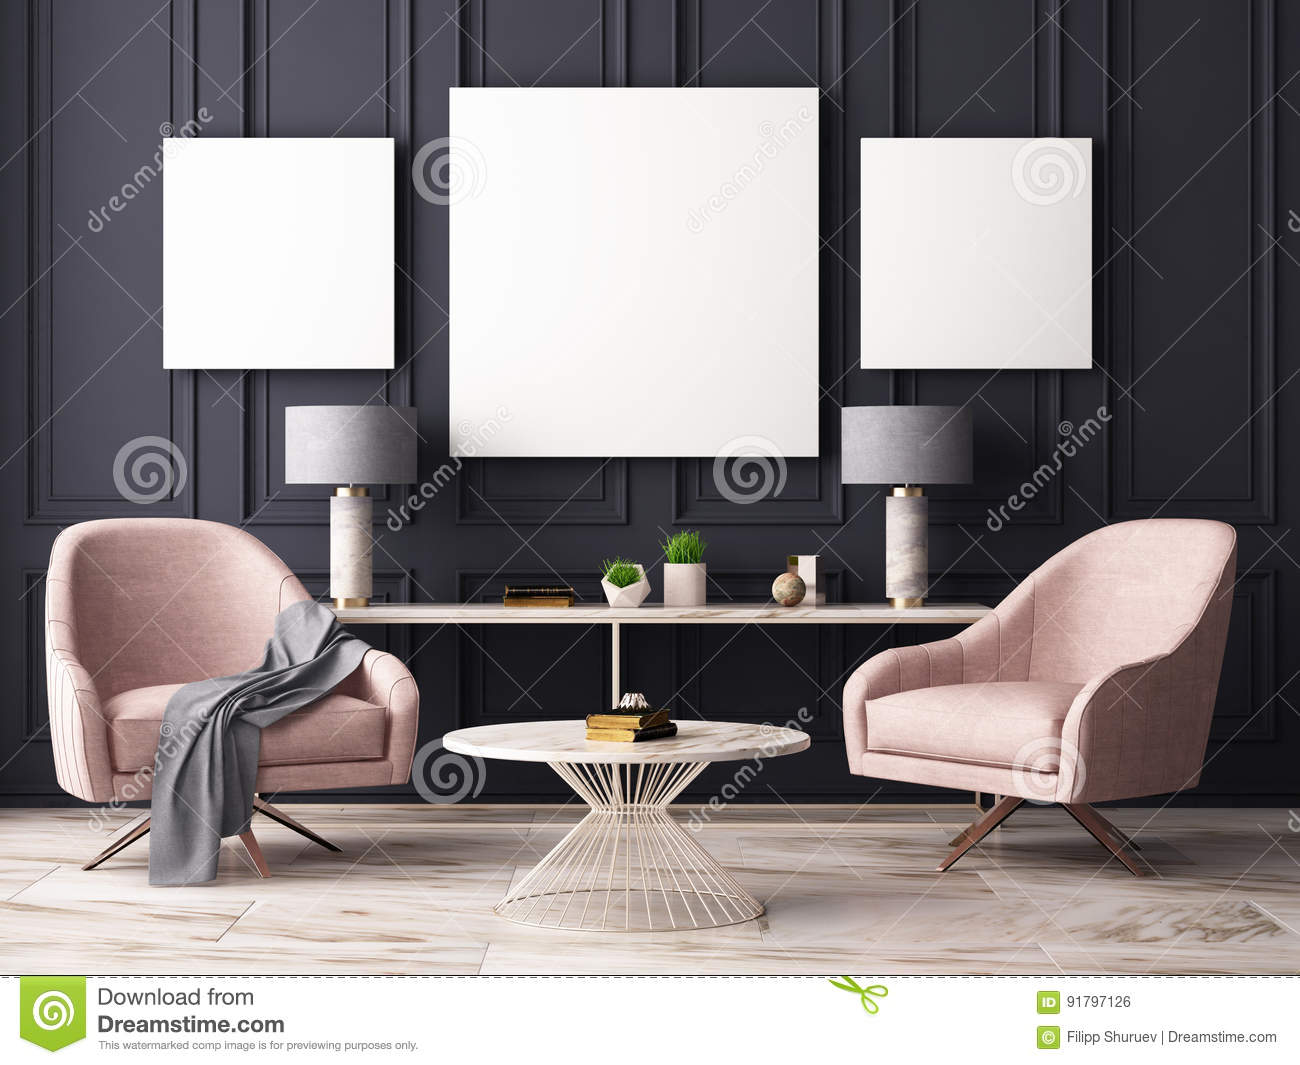 Peachy Mock Up Poster In A Pastel Interior With Armchairs And A Uwap Interior Chair Design Uwaporg